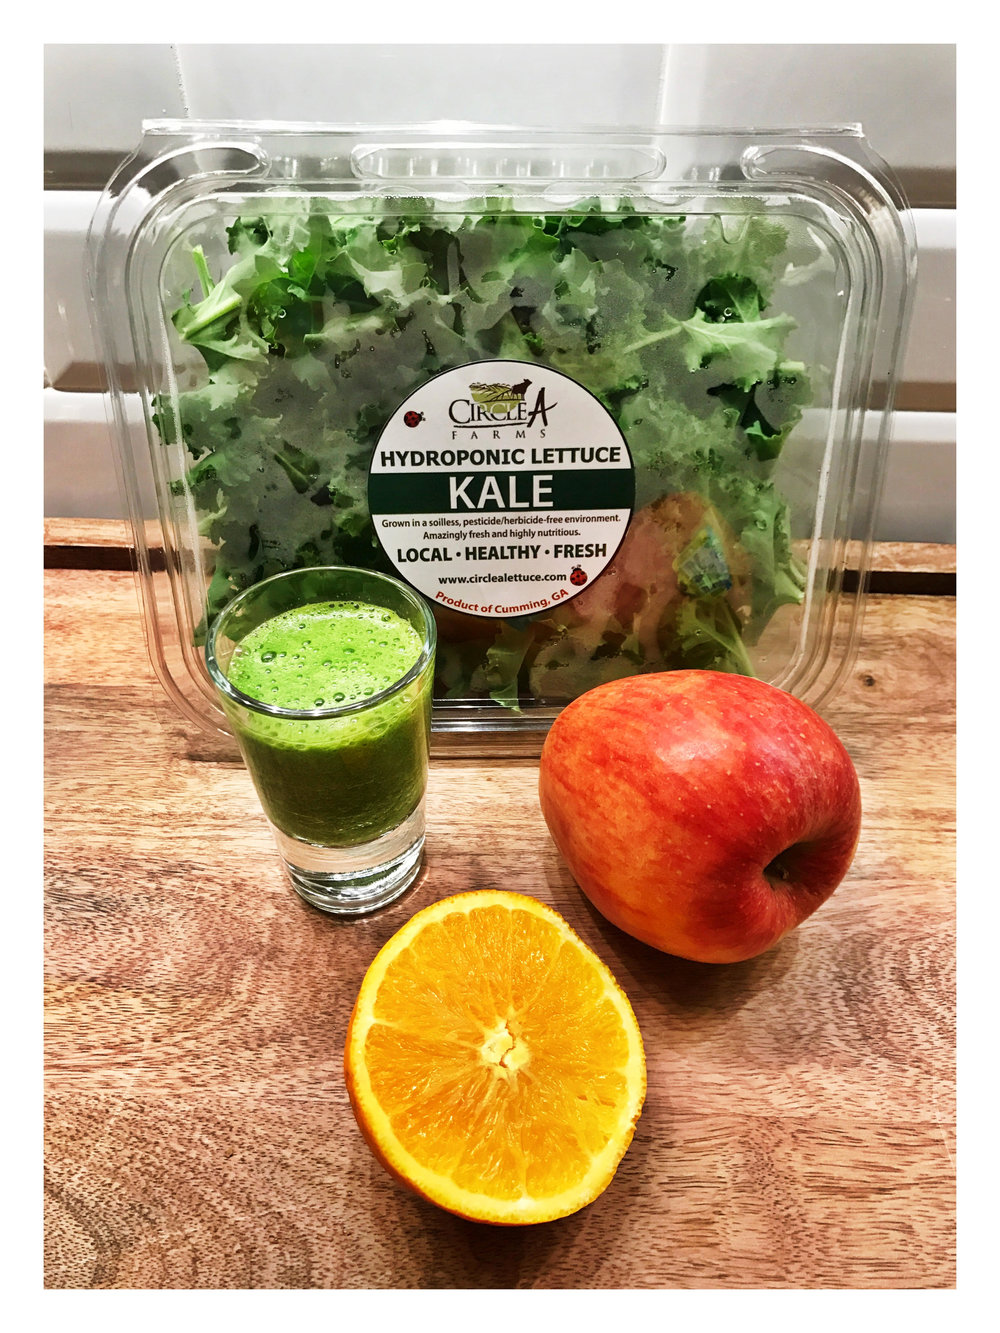 Kale shots instead of Tequila shots these days...